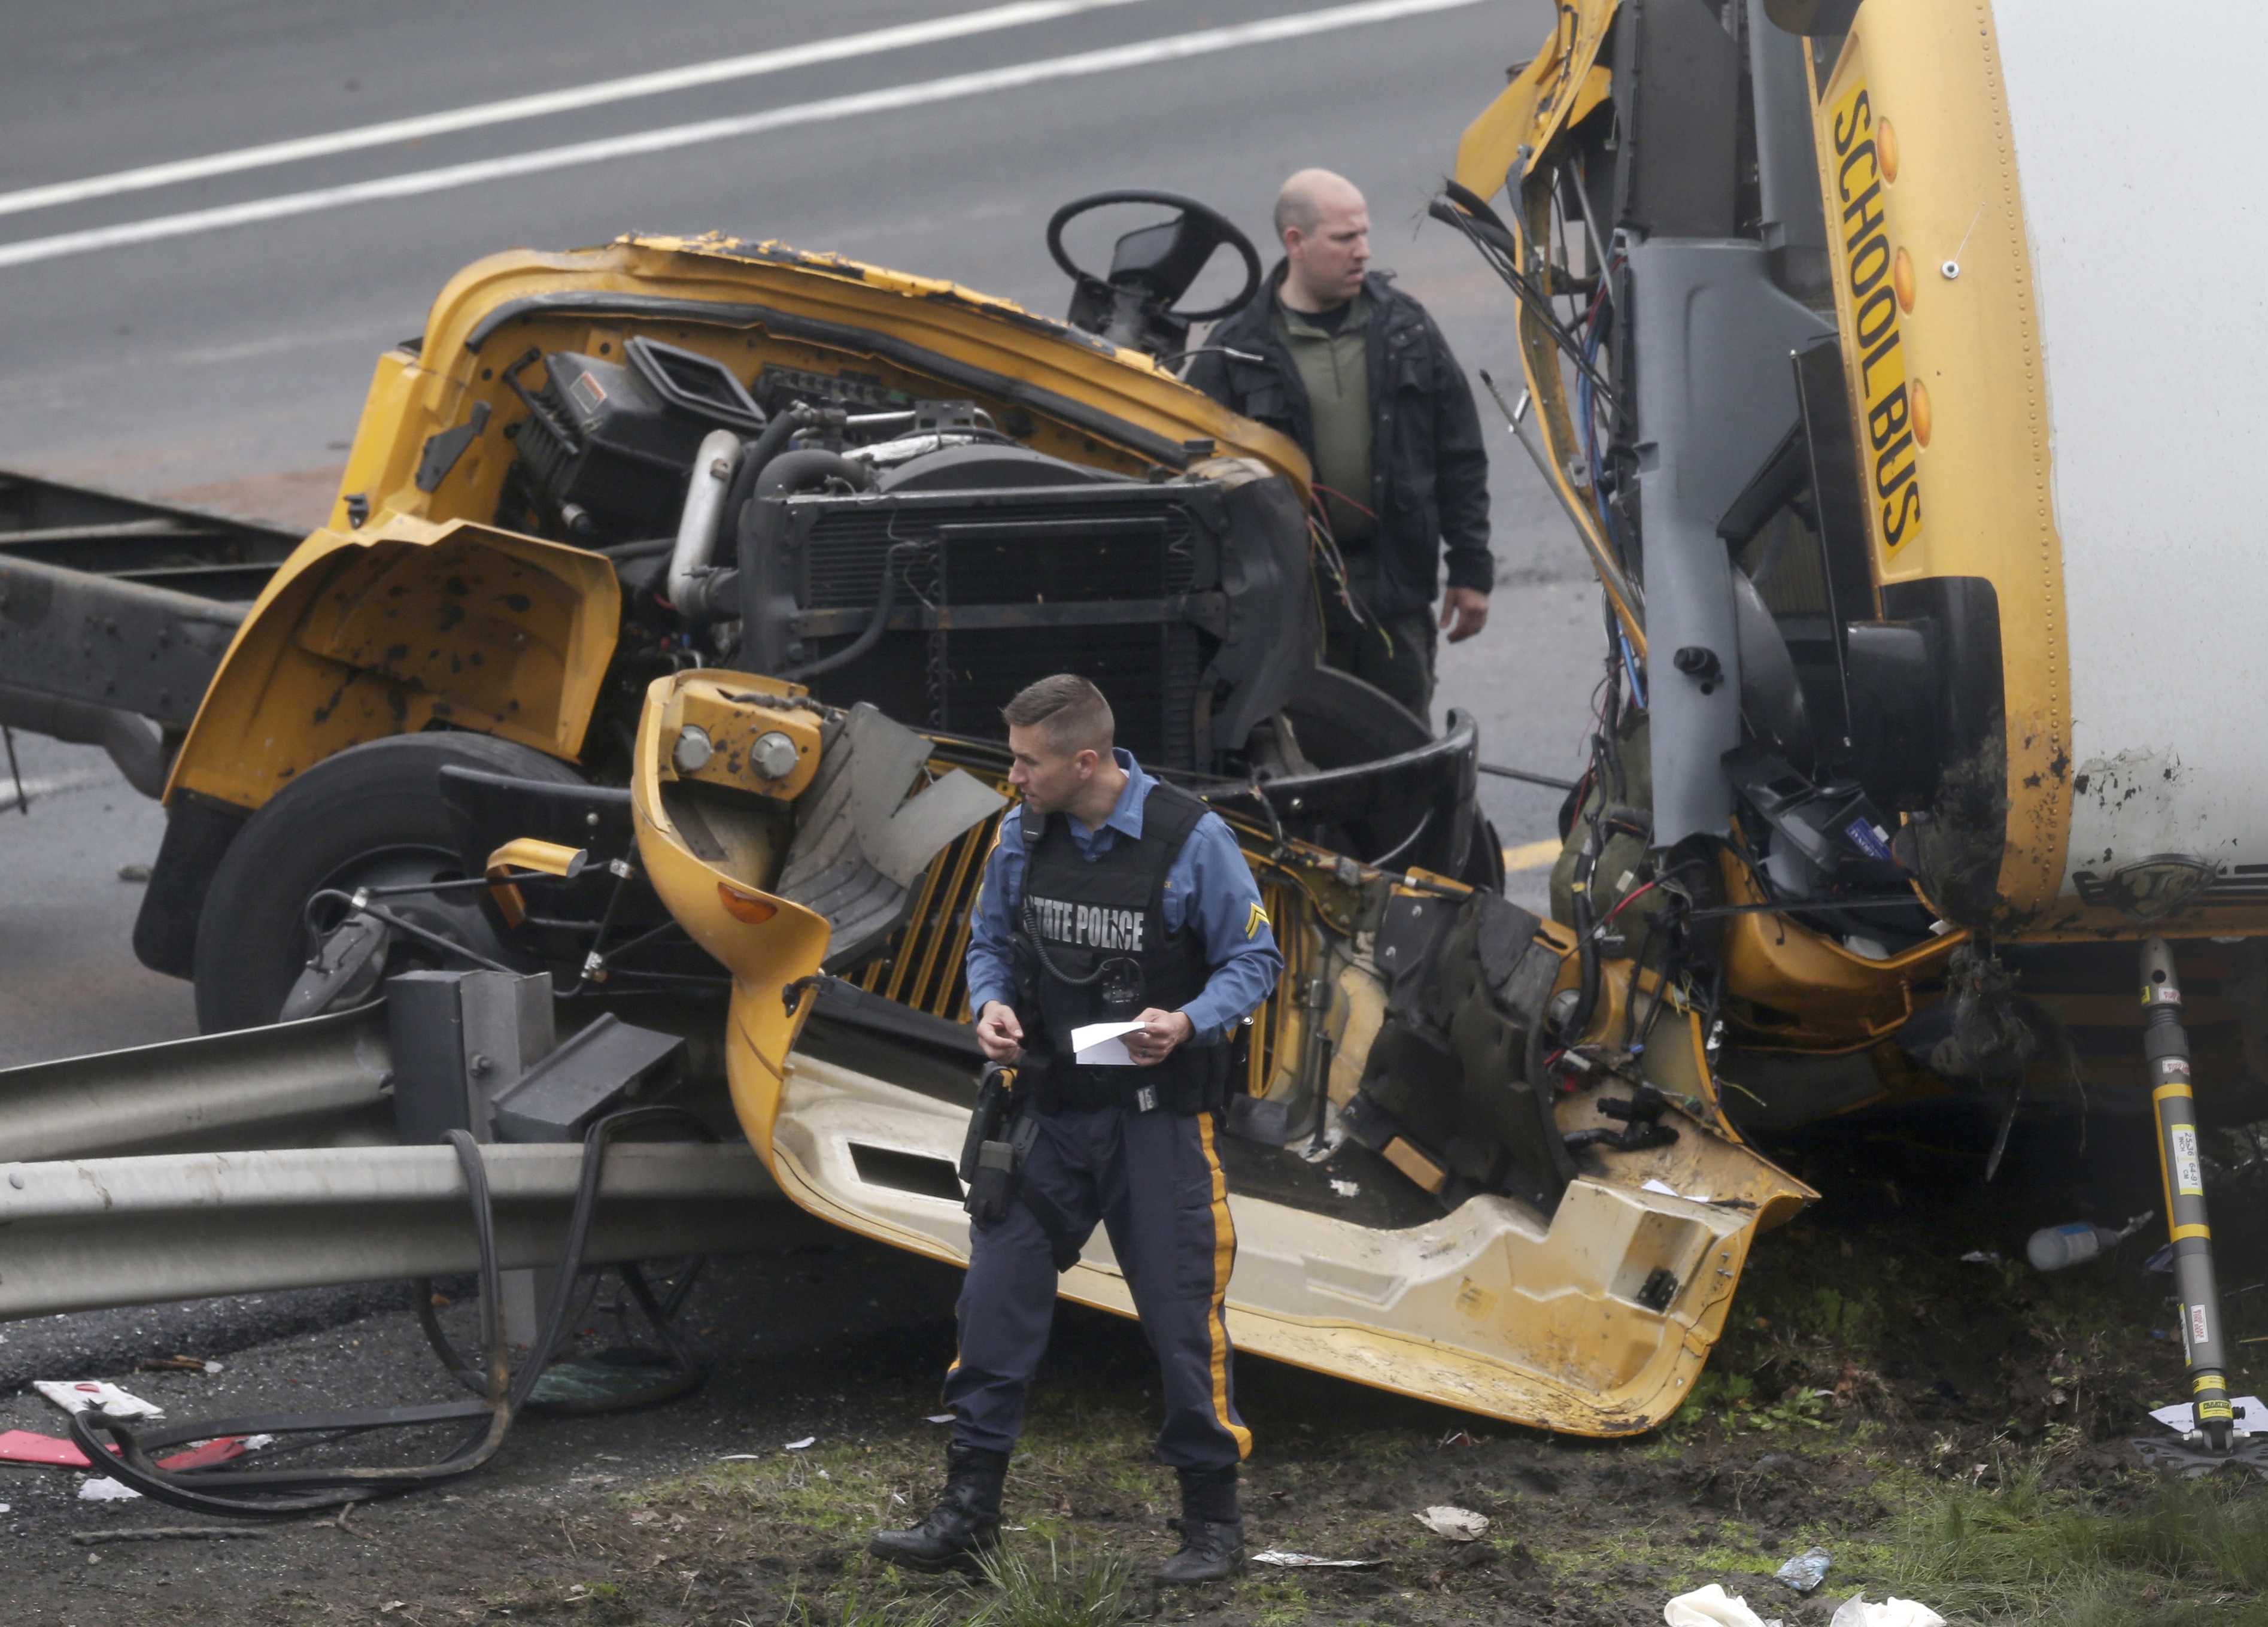 "<div class=""meta image-caption""><div class=""origin-logo origin-image none""><span>none</span></div><span class=""caption-text"">Emergency personnel work at the scene of a school bus and dump truck collision, injuring multiple people, on Interstate 80 in Mount Olive, N.J., Thursday, May 17, 2018. (AP Photo/Seth Wenig)</span></div>"